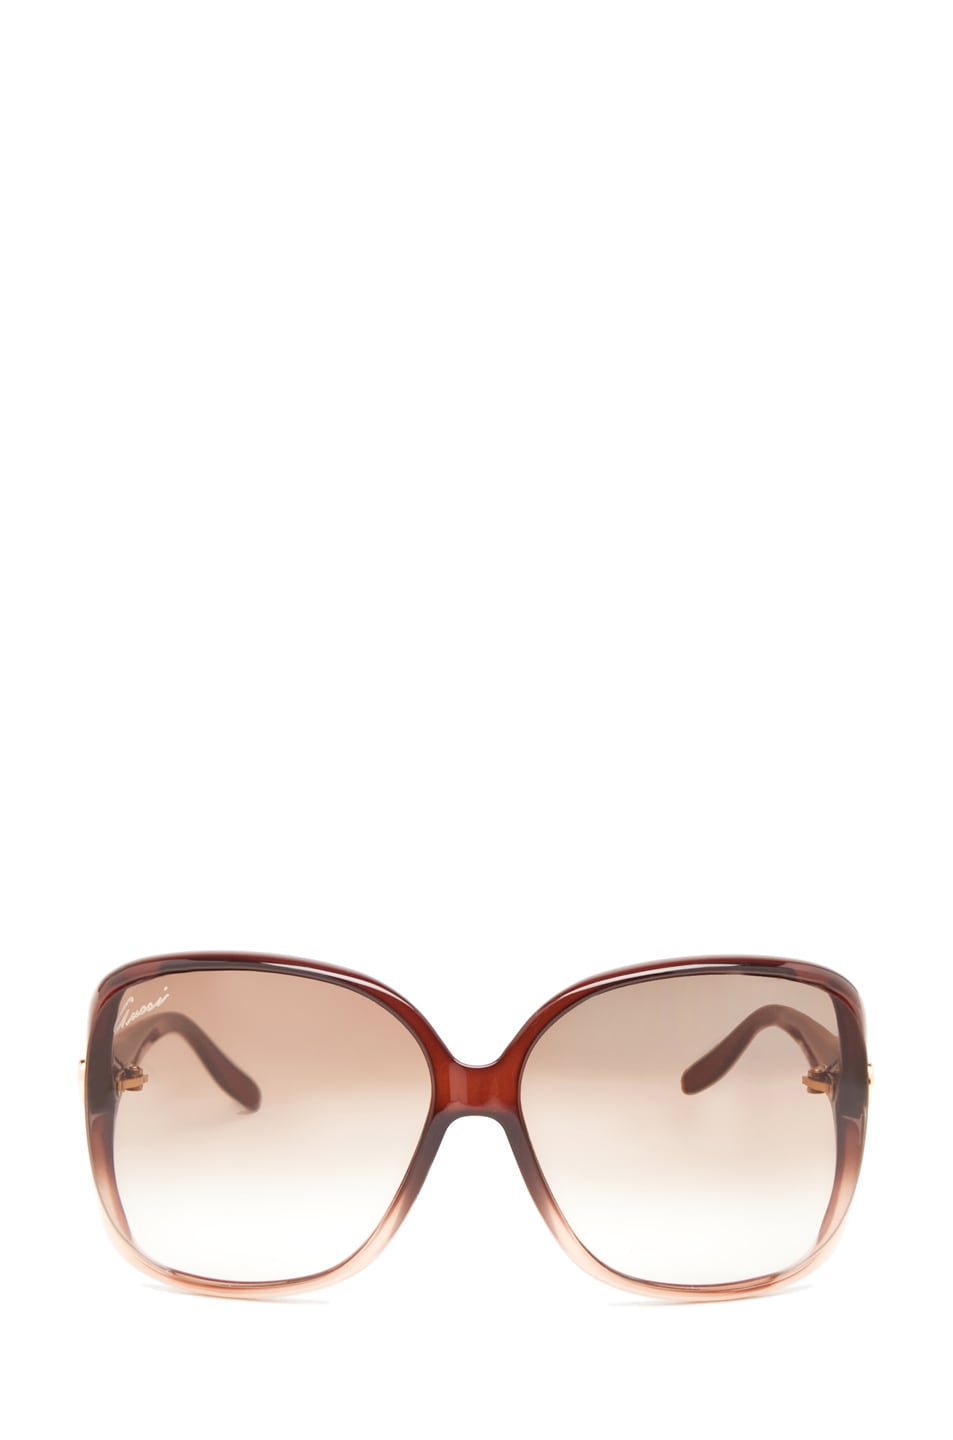 Image 1 of Gucci 3500 Sunglasses in Shaded Brown